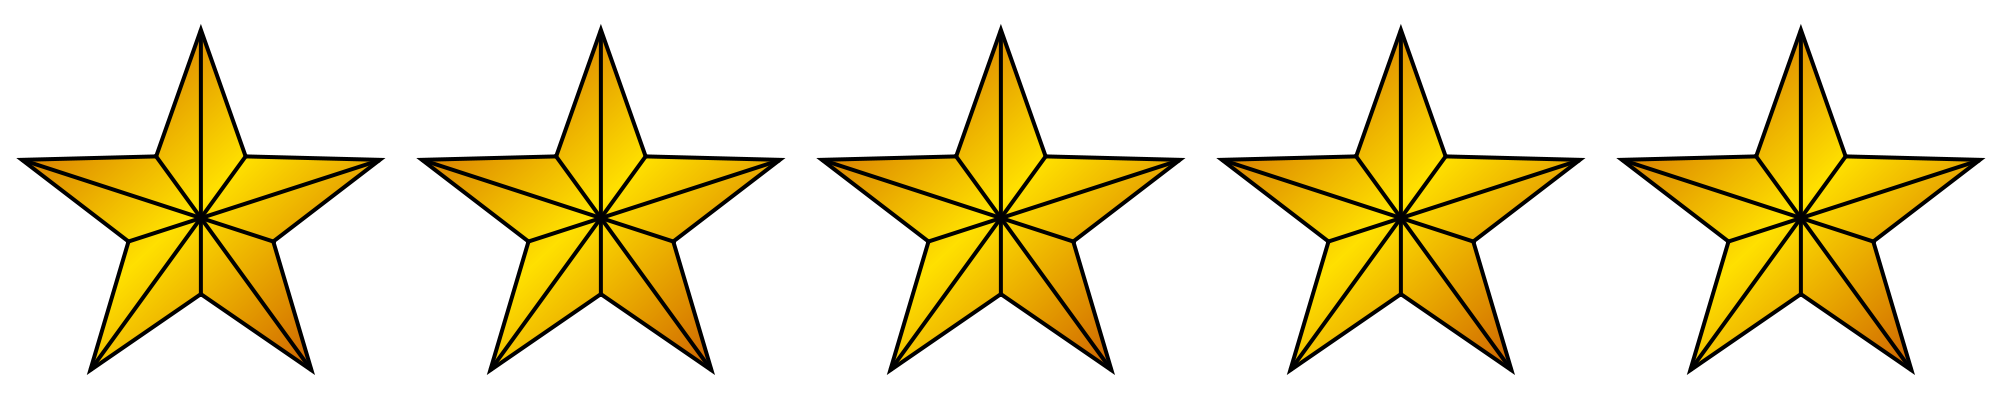 Gold star line clipart vector royalty free download Collection of Image Gold Star | Buy any image and use it for free ... vector royalty free download